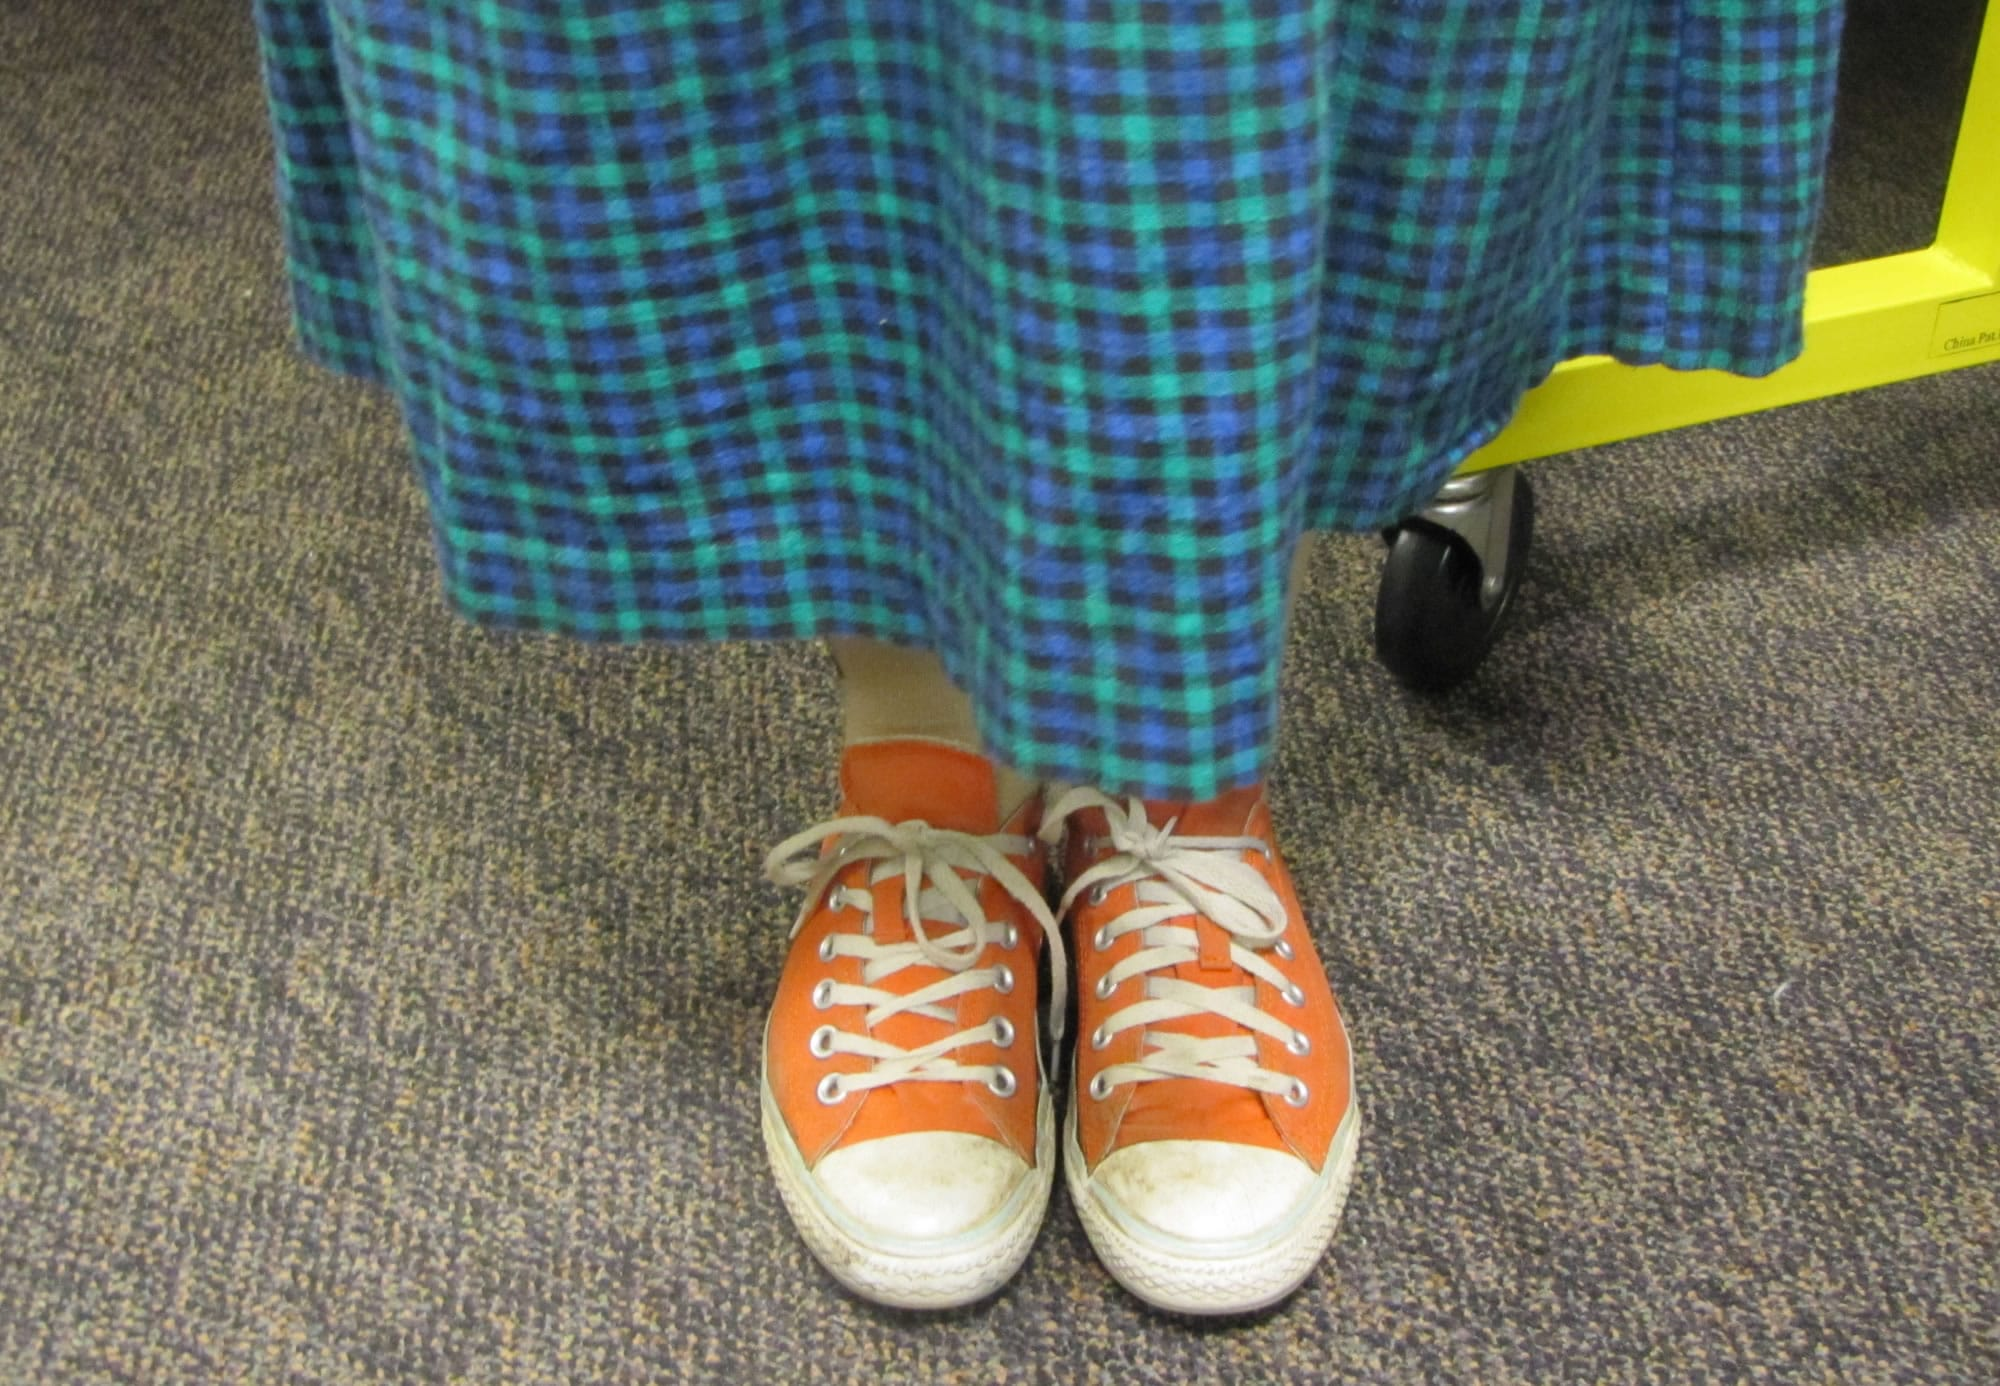 Eleven-year-old Benedicta Hardy tries on her re-enactor's dress while wearing her everyday shoes.